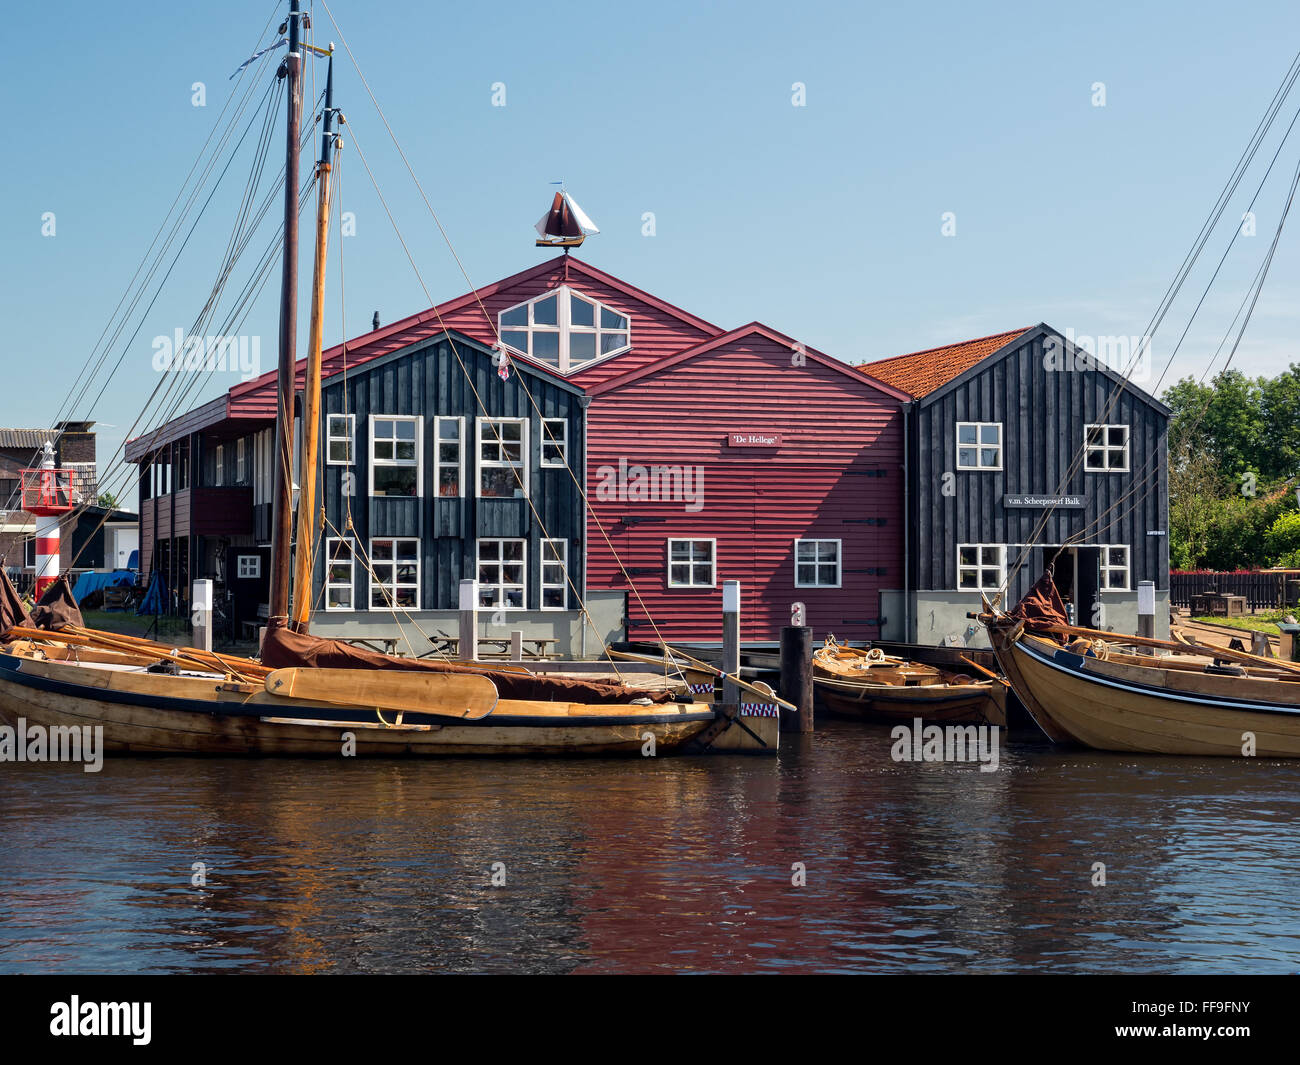 Harbor house in the town of Elburg - Stock Image